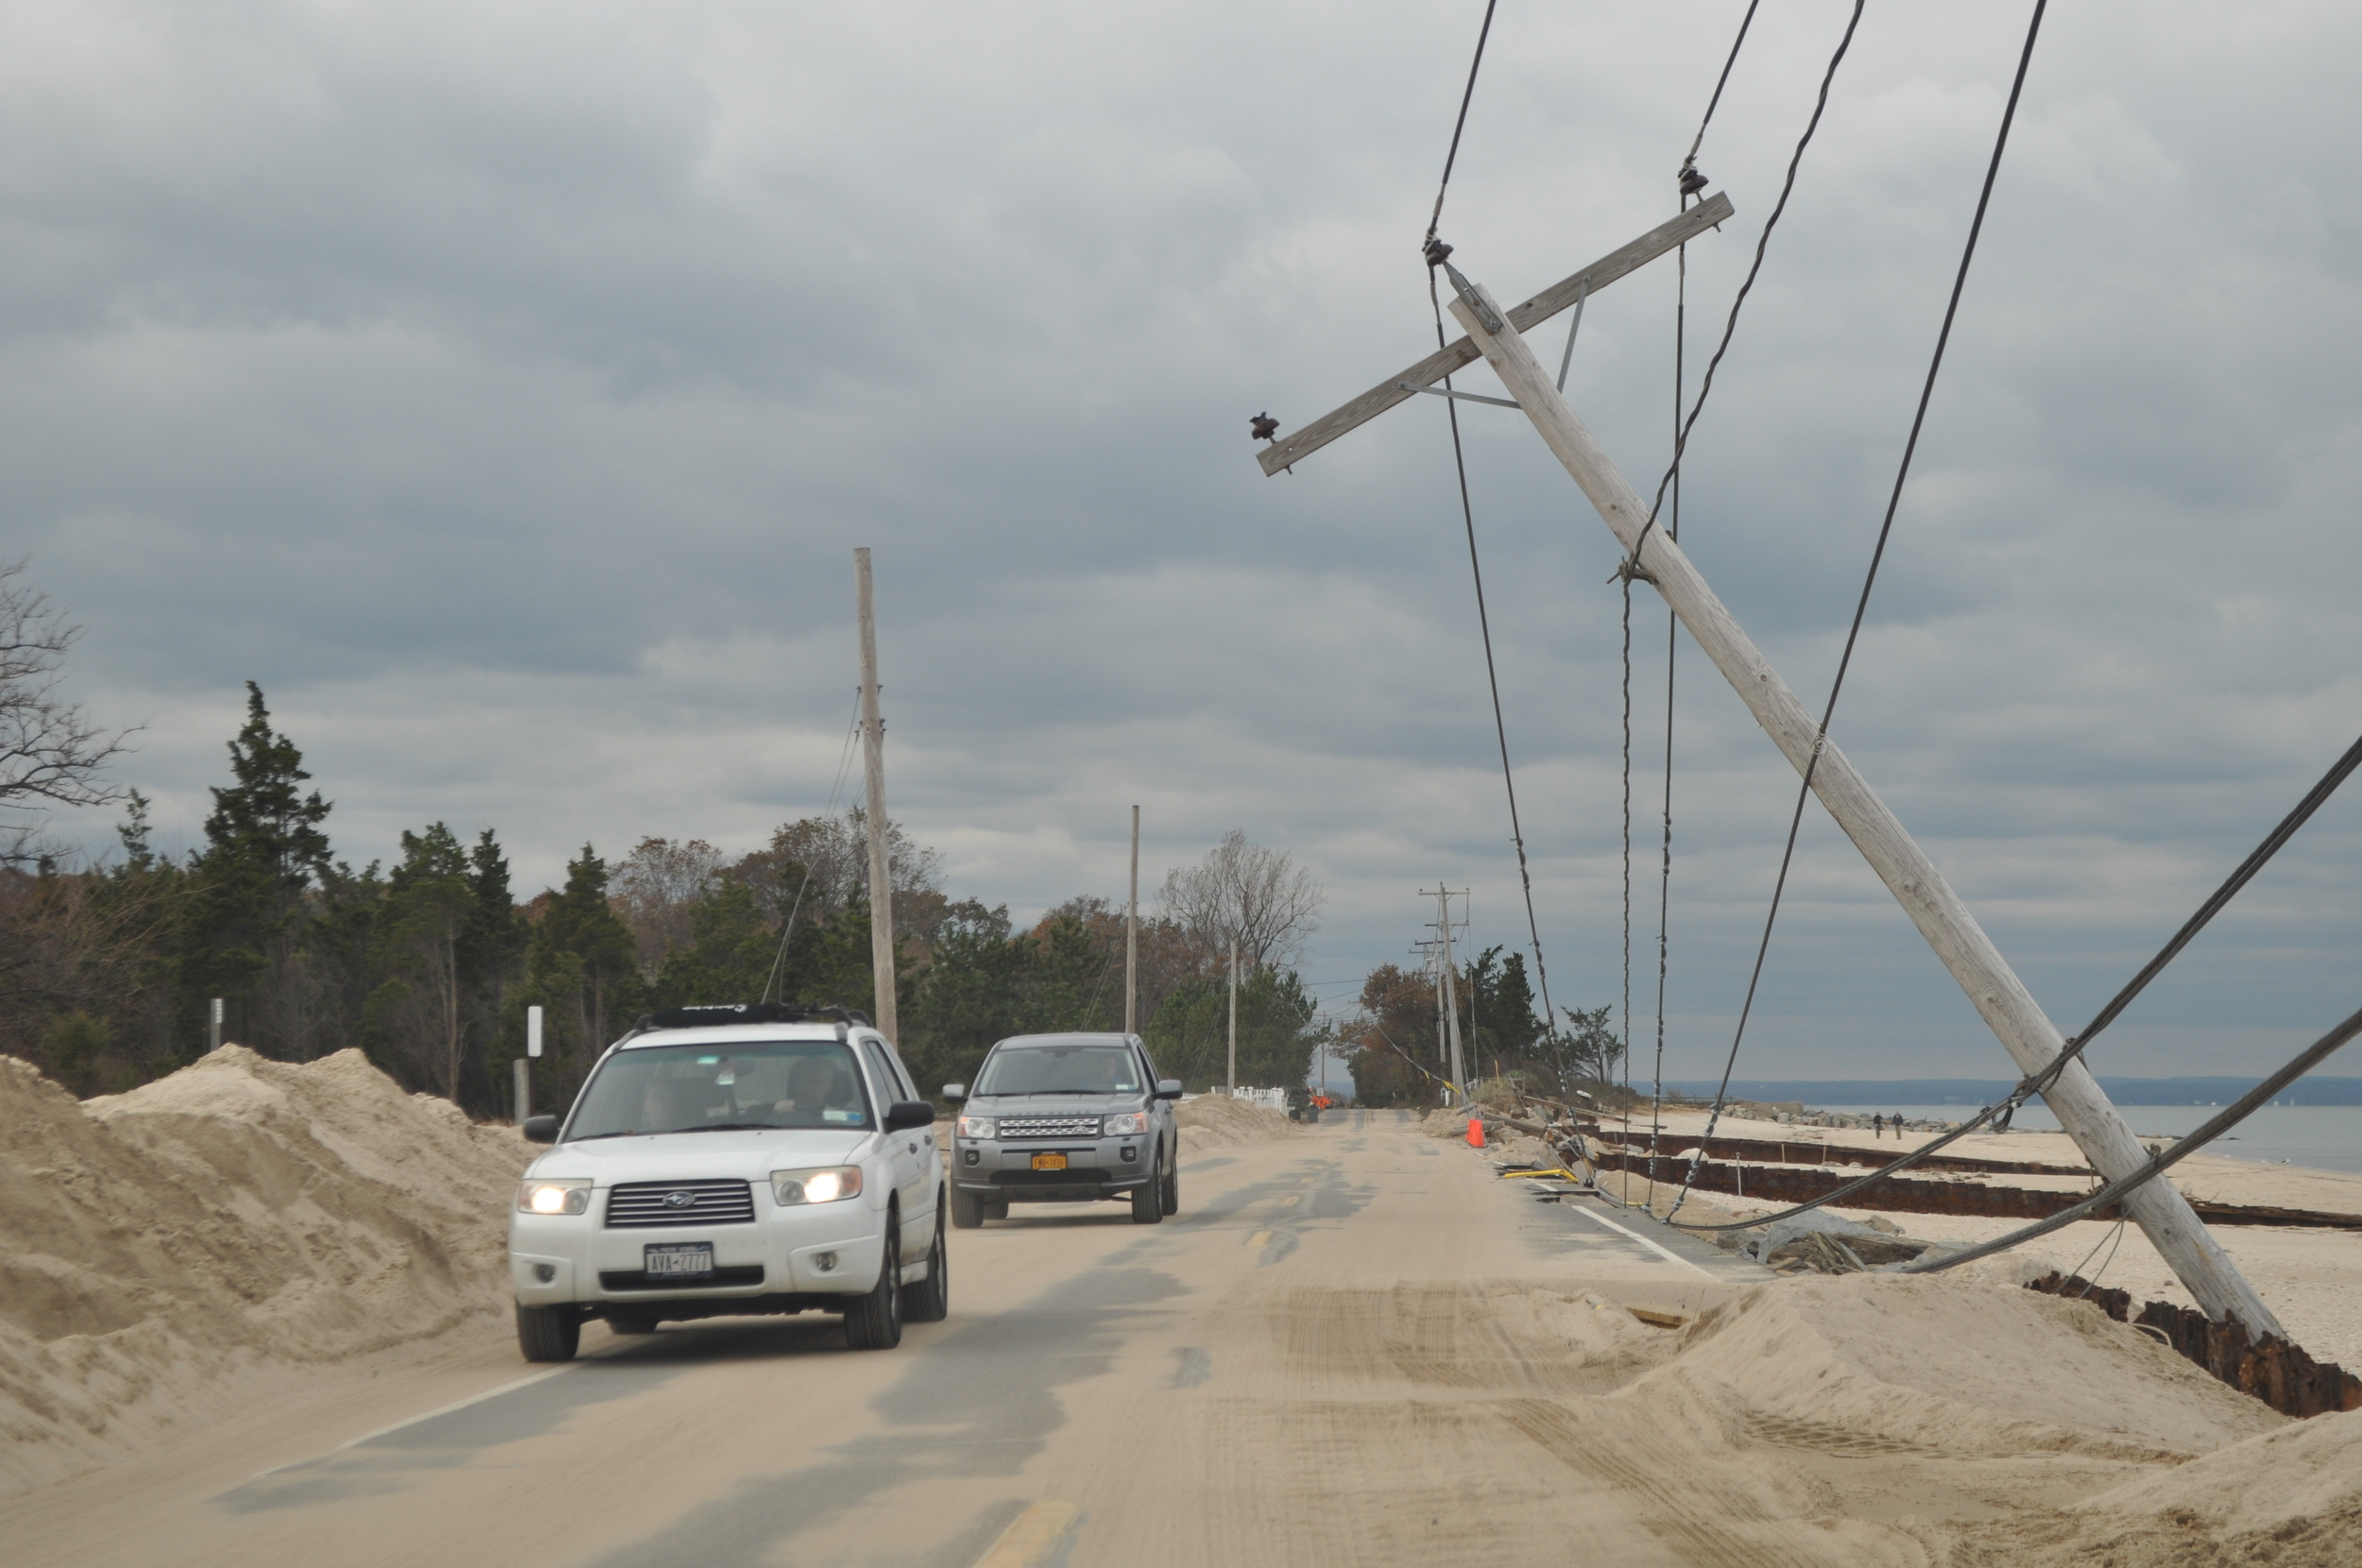 On Jan. 5, the Asharoken Village Board voted in favor of a resolution authorizing the retaining of a coastal engineer to help determine the best option for the Asharoken Storm Damage Reduction Plan.